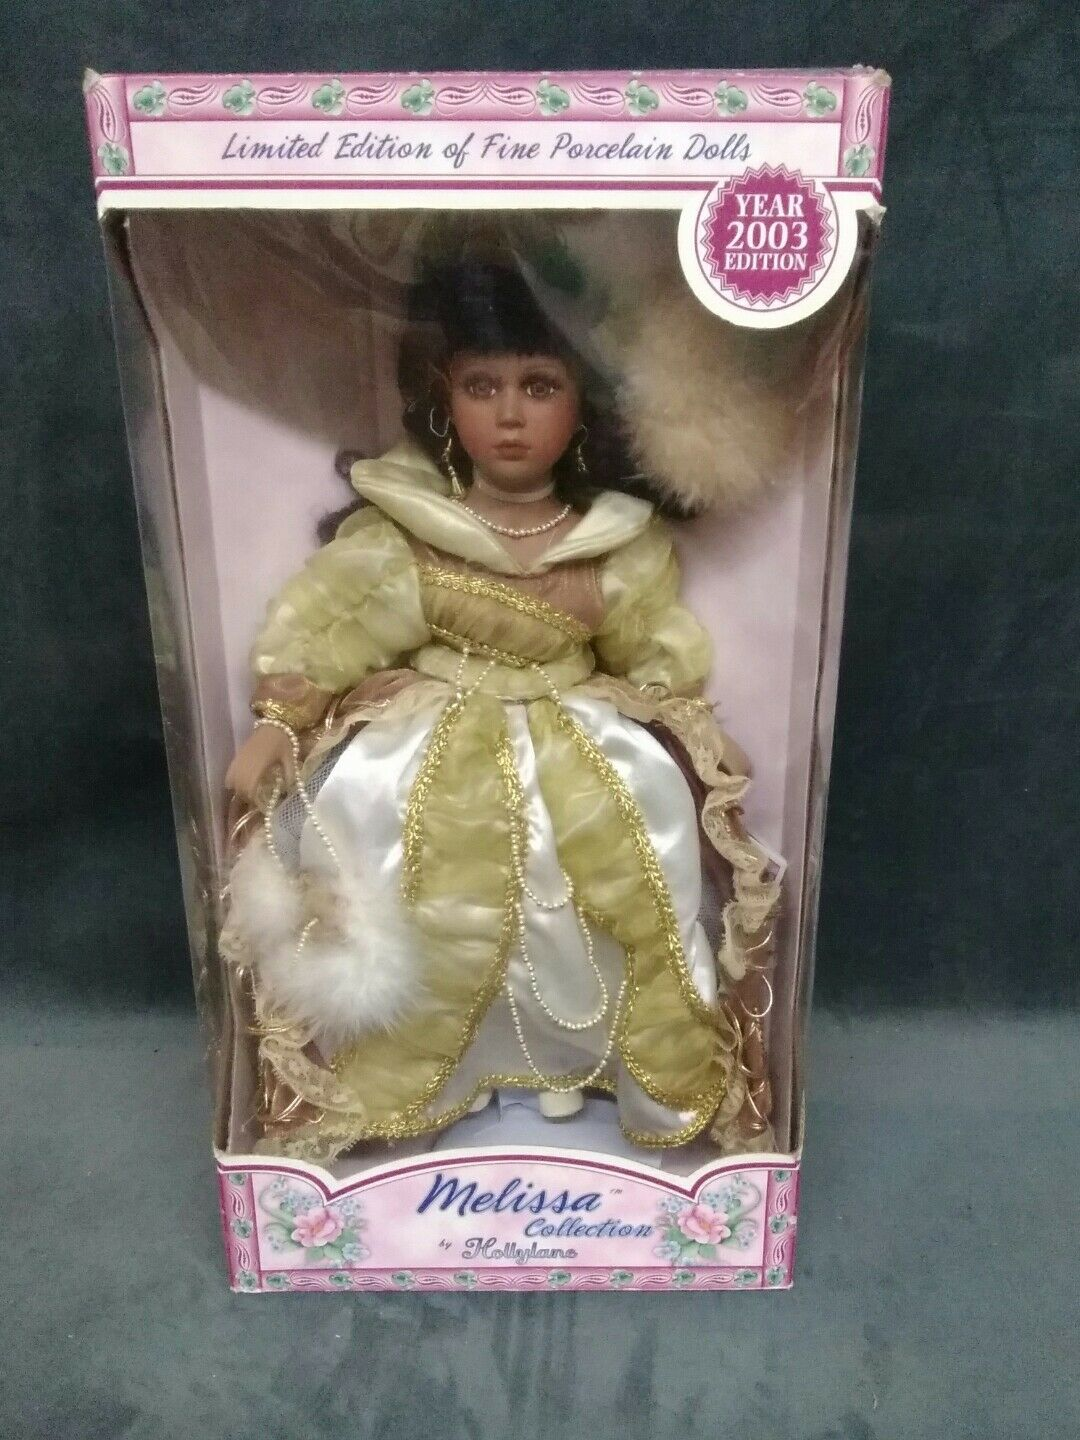 Melissa Collection-edición limitada de muñecas de porcelana fina 2003 por hollylane